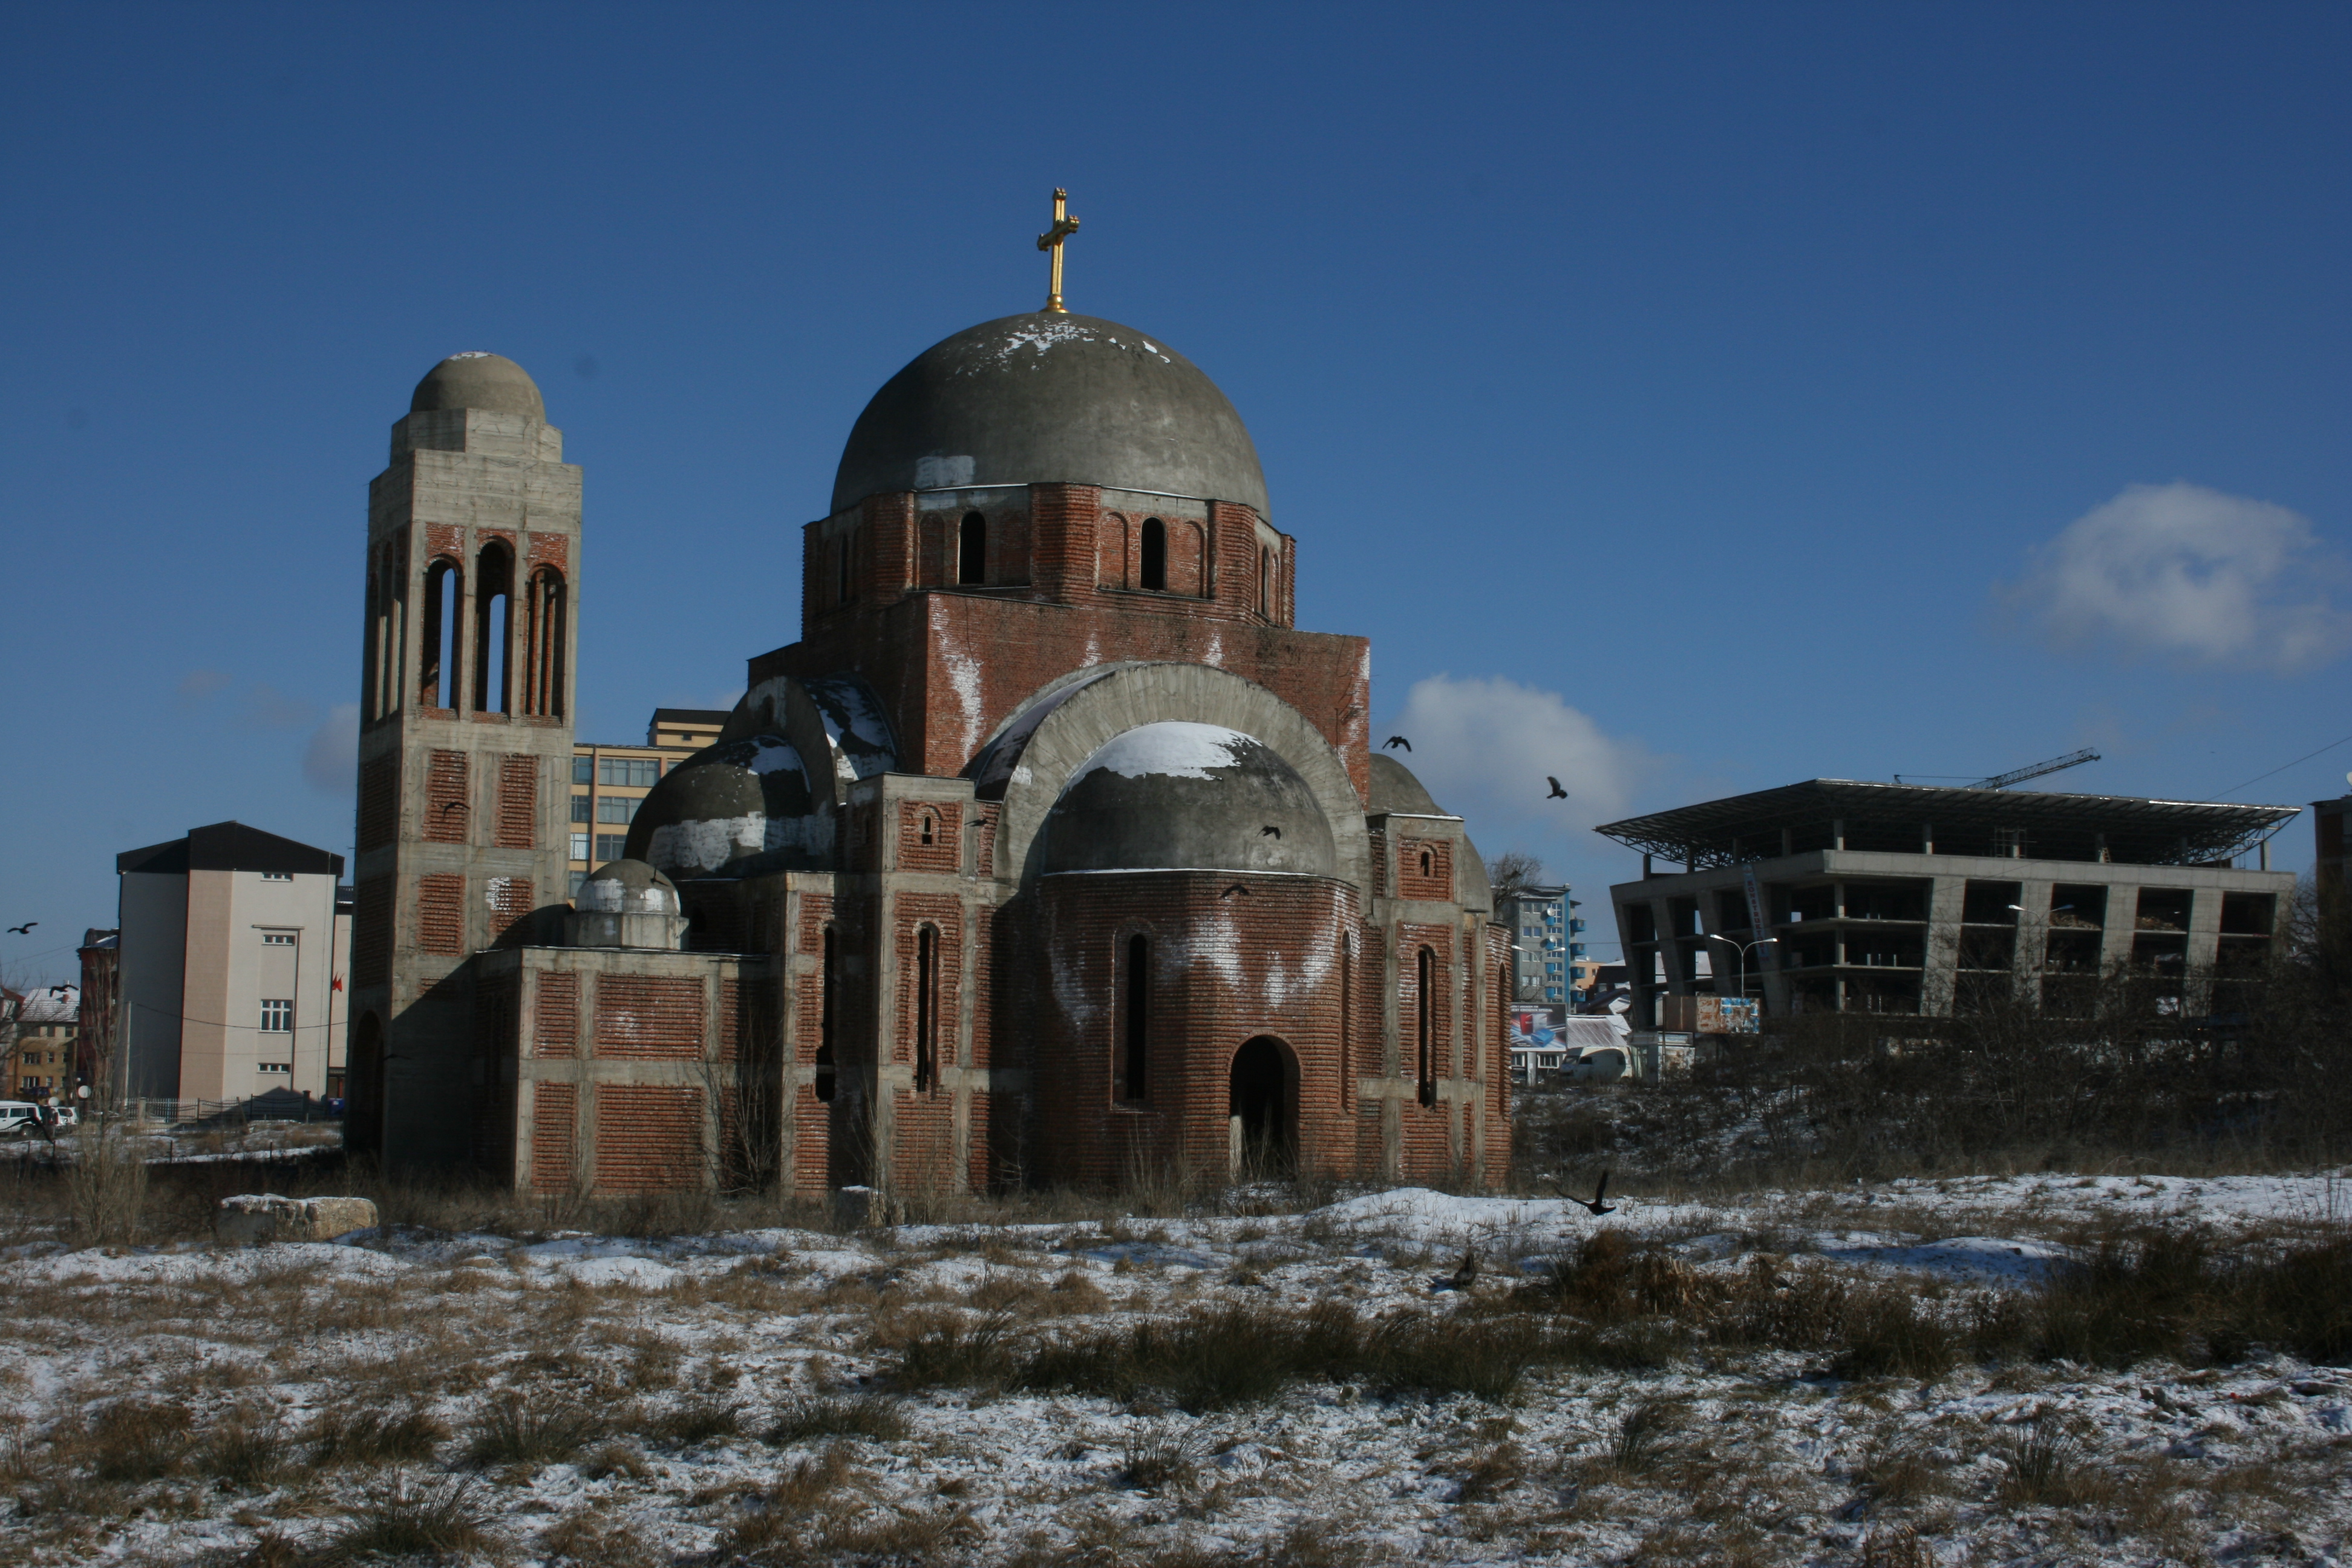 . . . and next door, the unfinished Serbian church